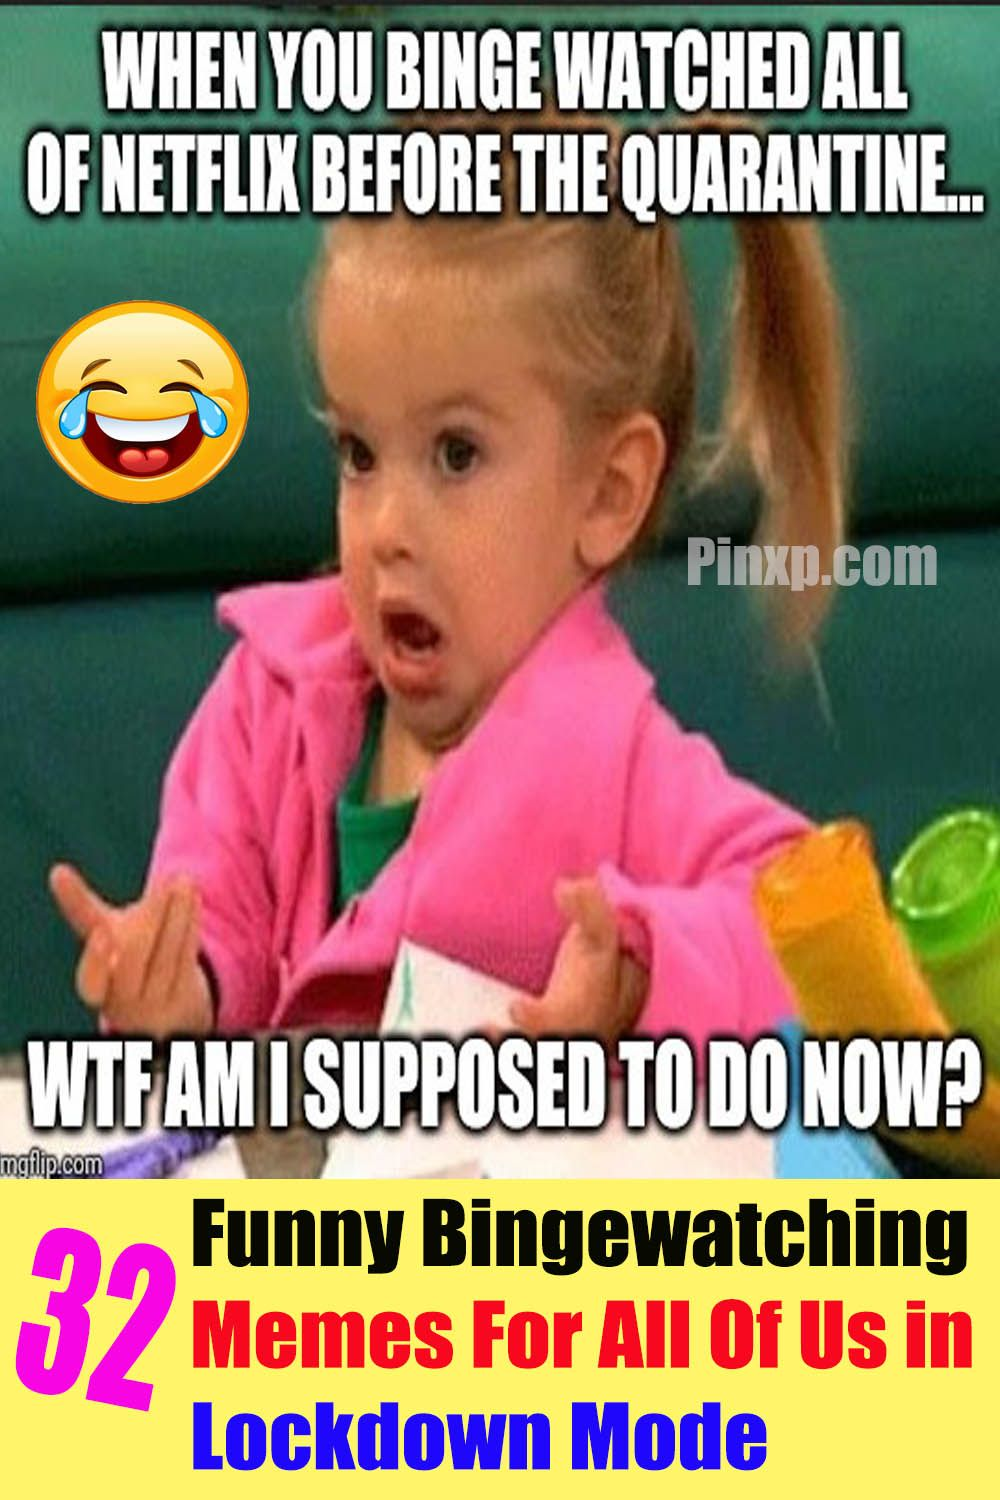 32 Funny Bingewatching Memes For All Of Us In Lockdown Mode Videos Funny Fun Facts Humor